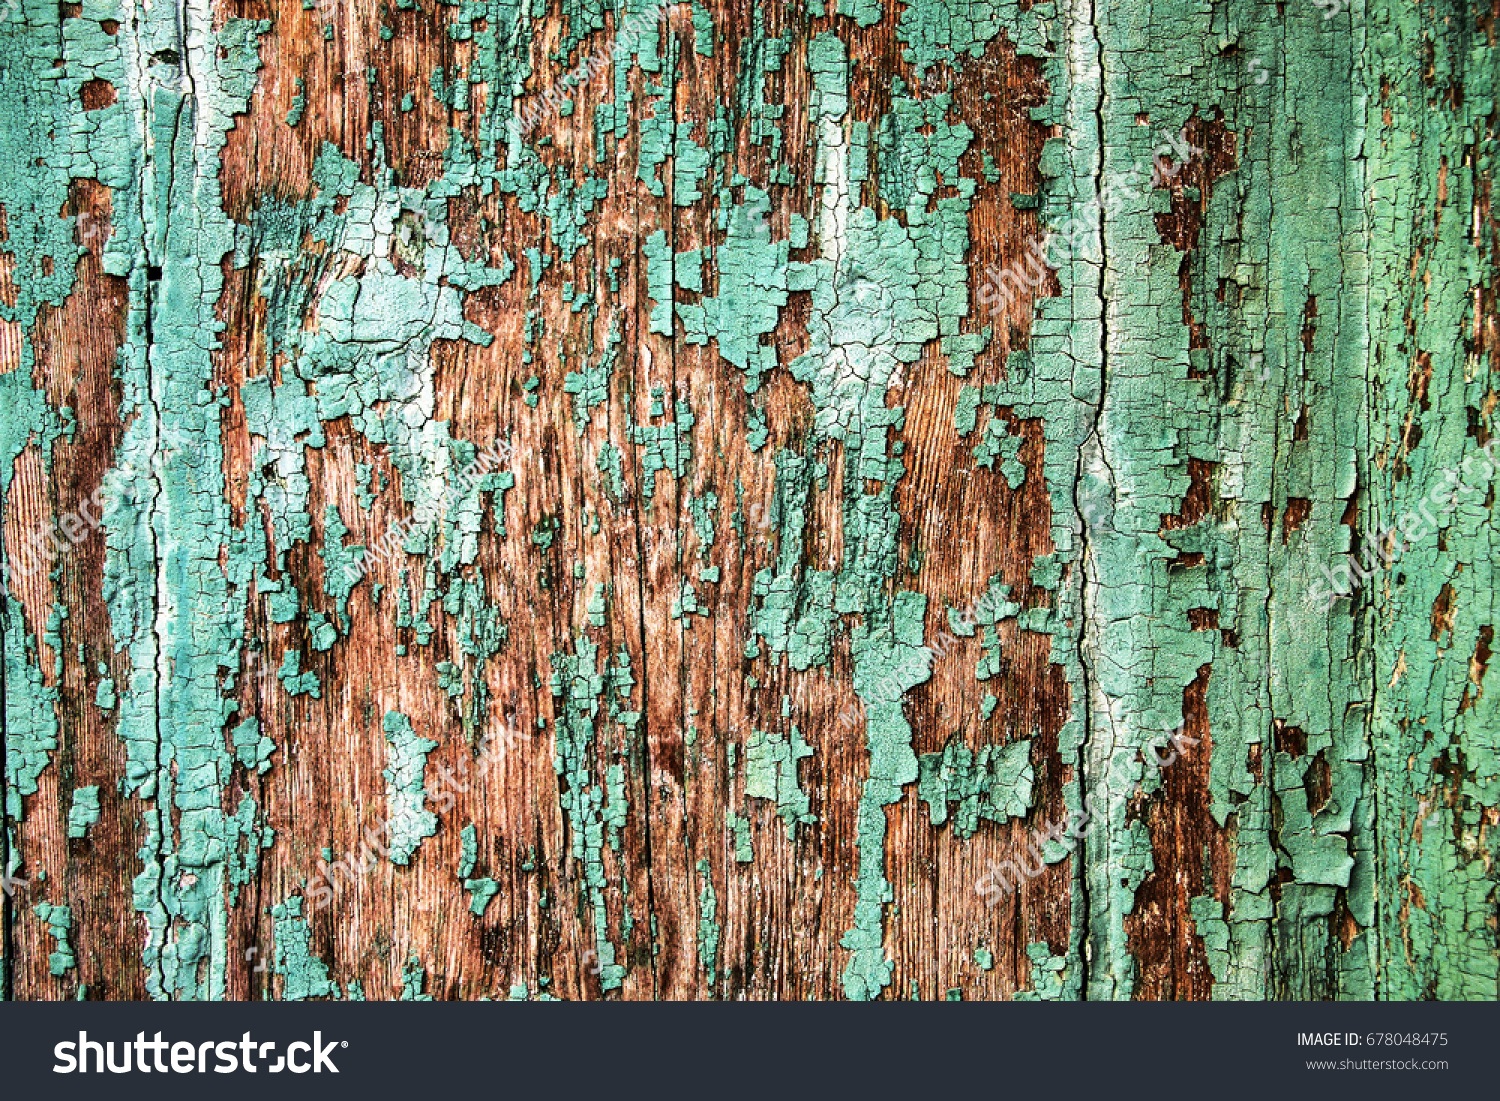 Texture Old Wood Cracked Paint Green Stock Photo 678048475 ...